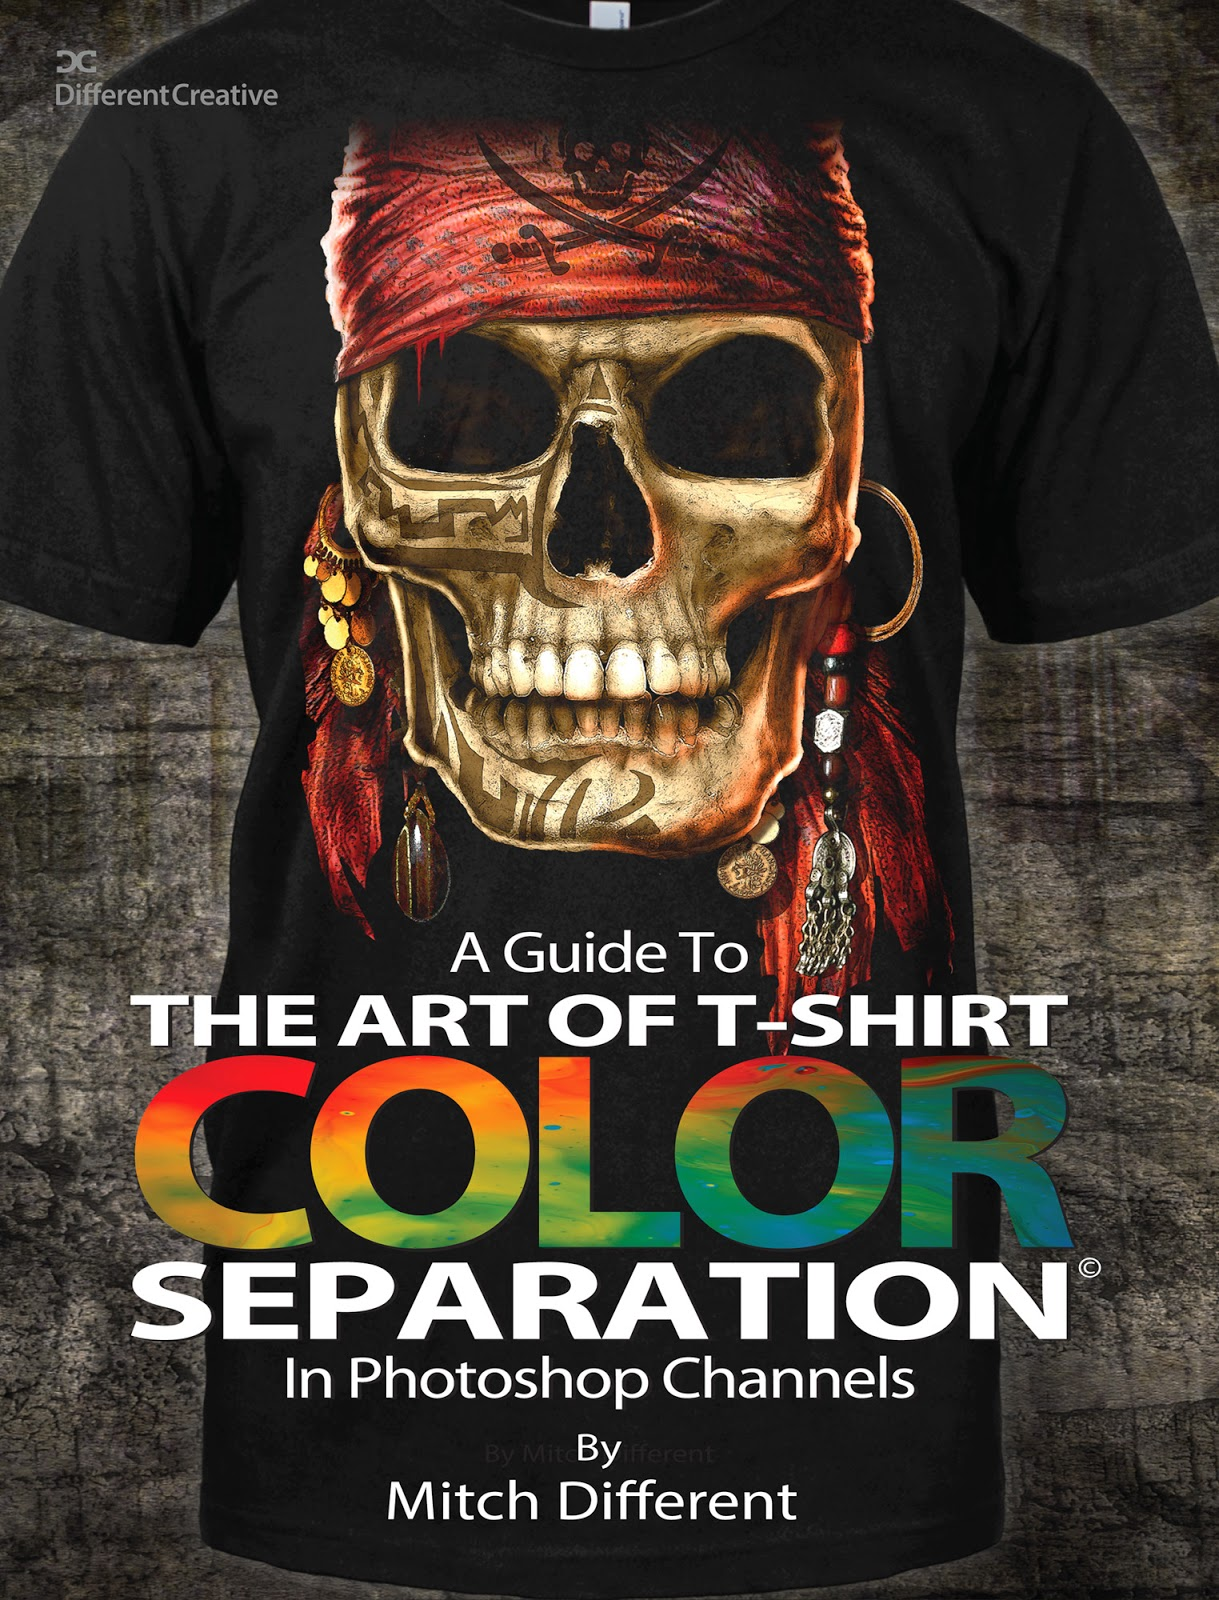 8a602a0159f A Guide to The Art of T-Shirt Color Separation